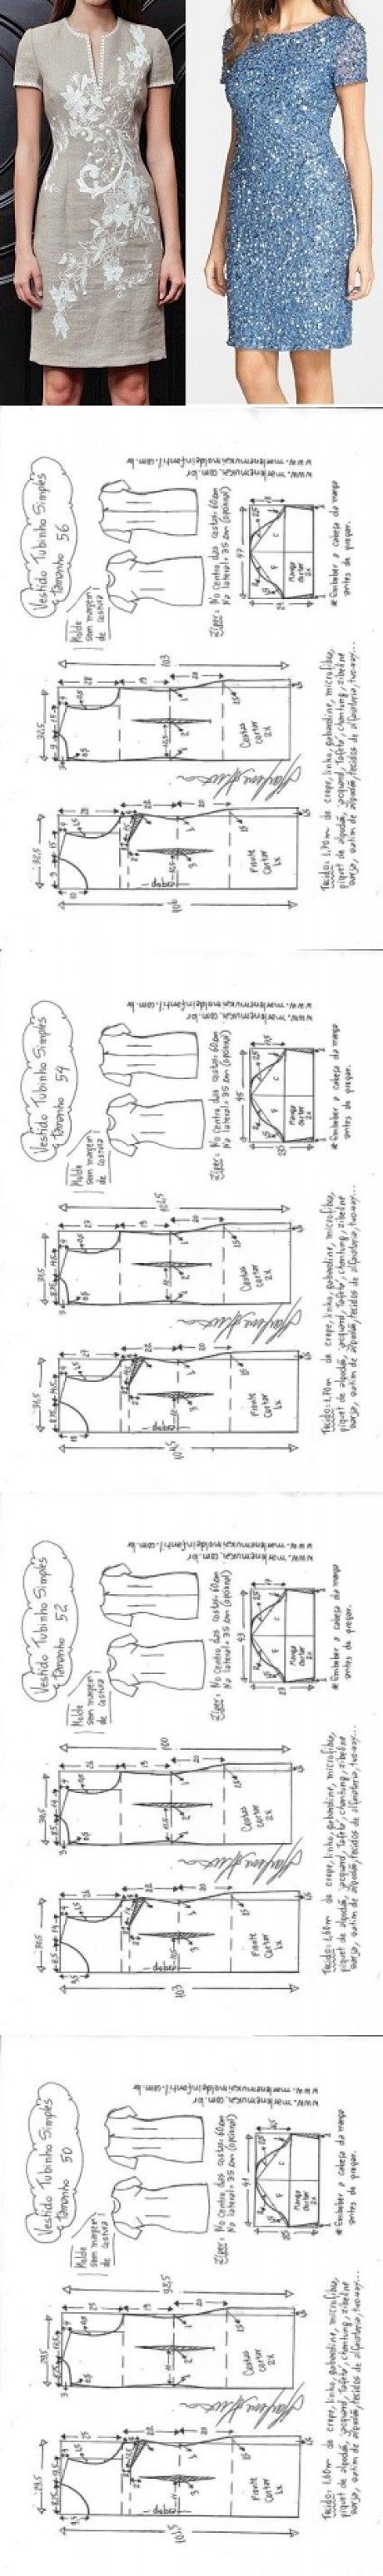 443 best 4G images on Pinterest | Sewing ideas, Sewing patterns and ...